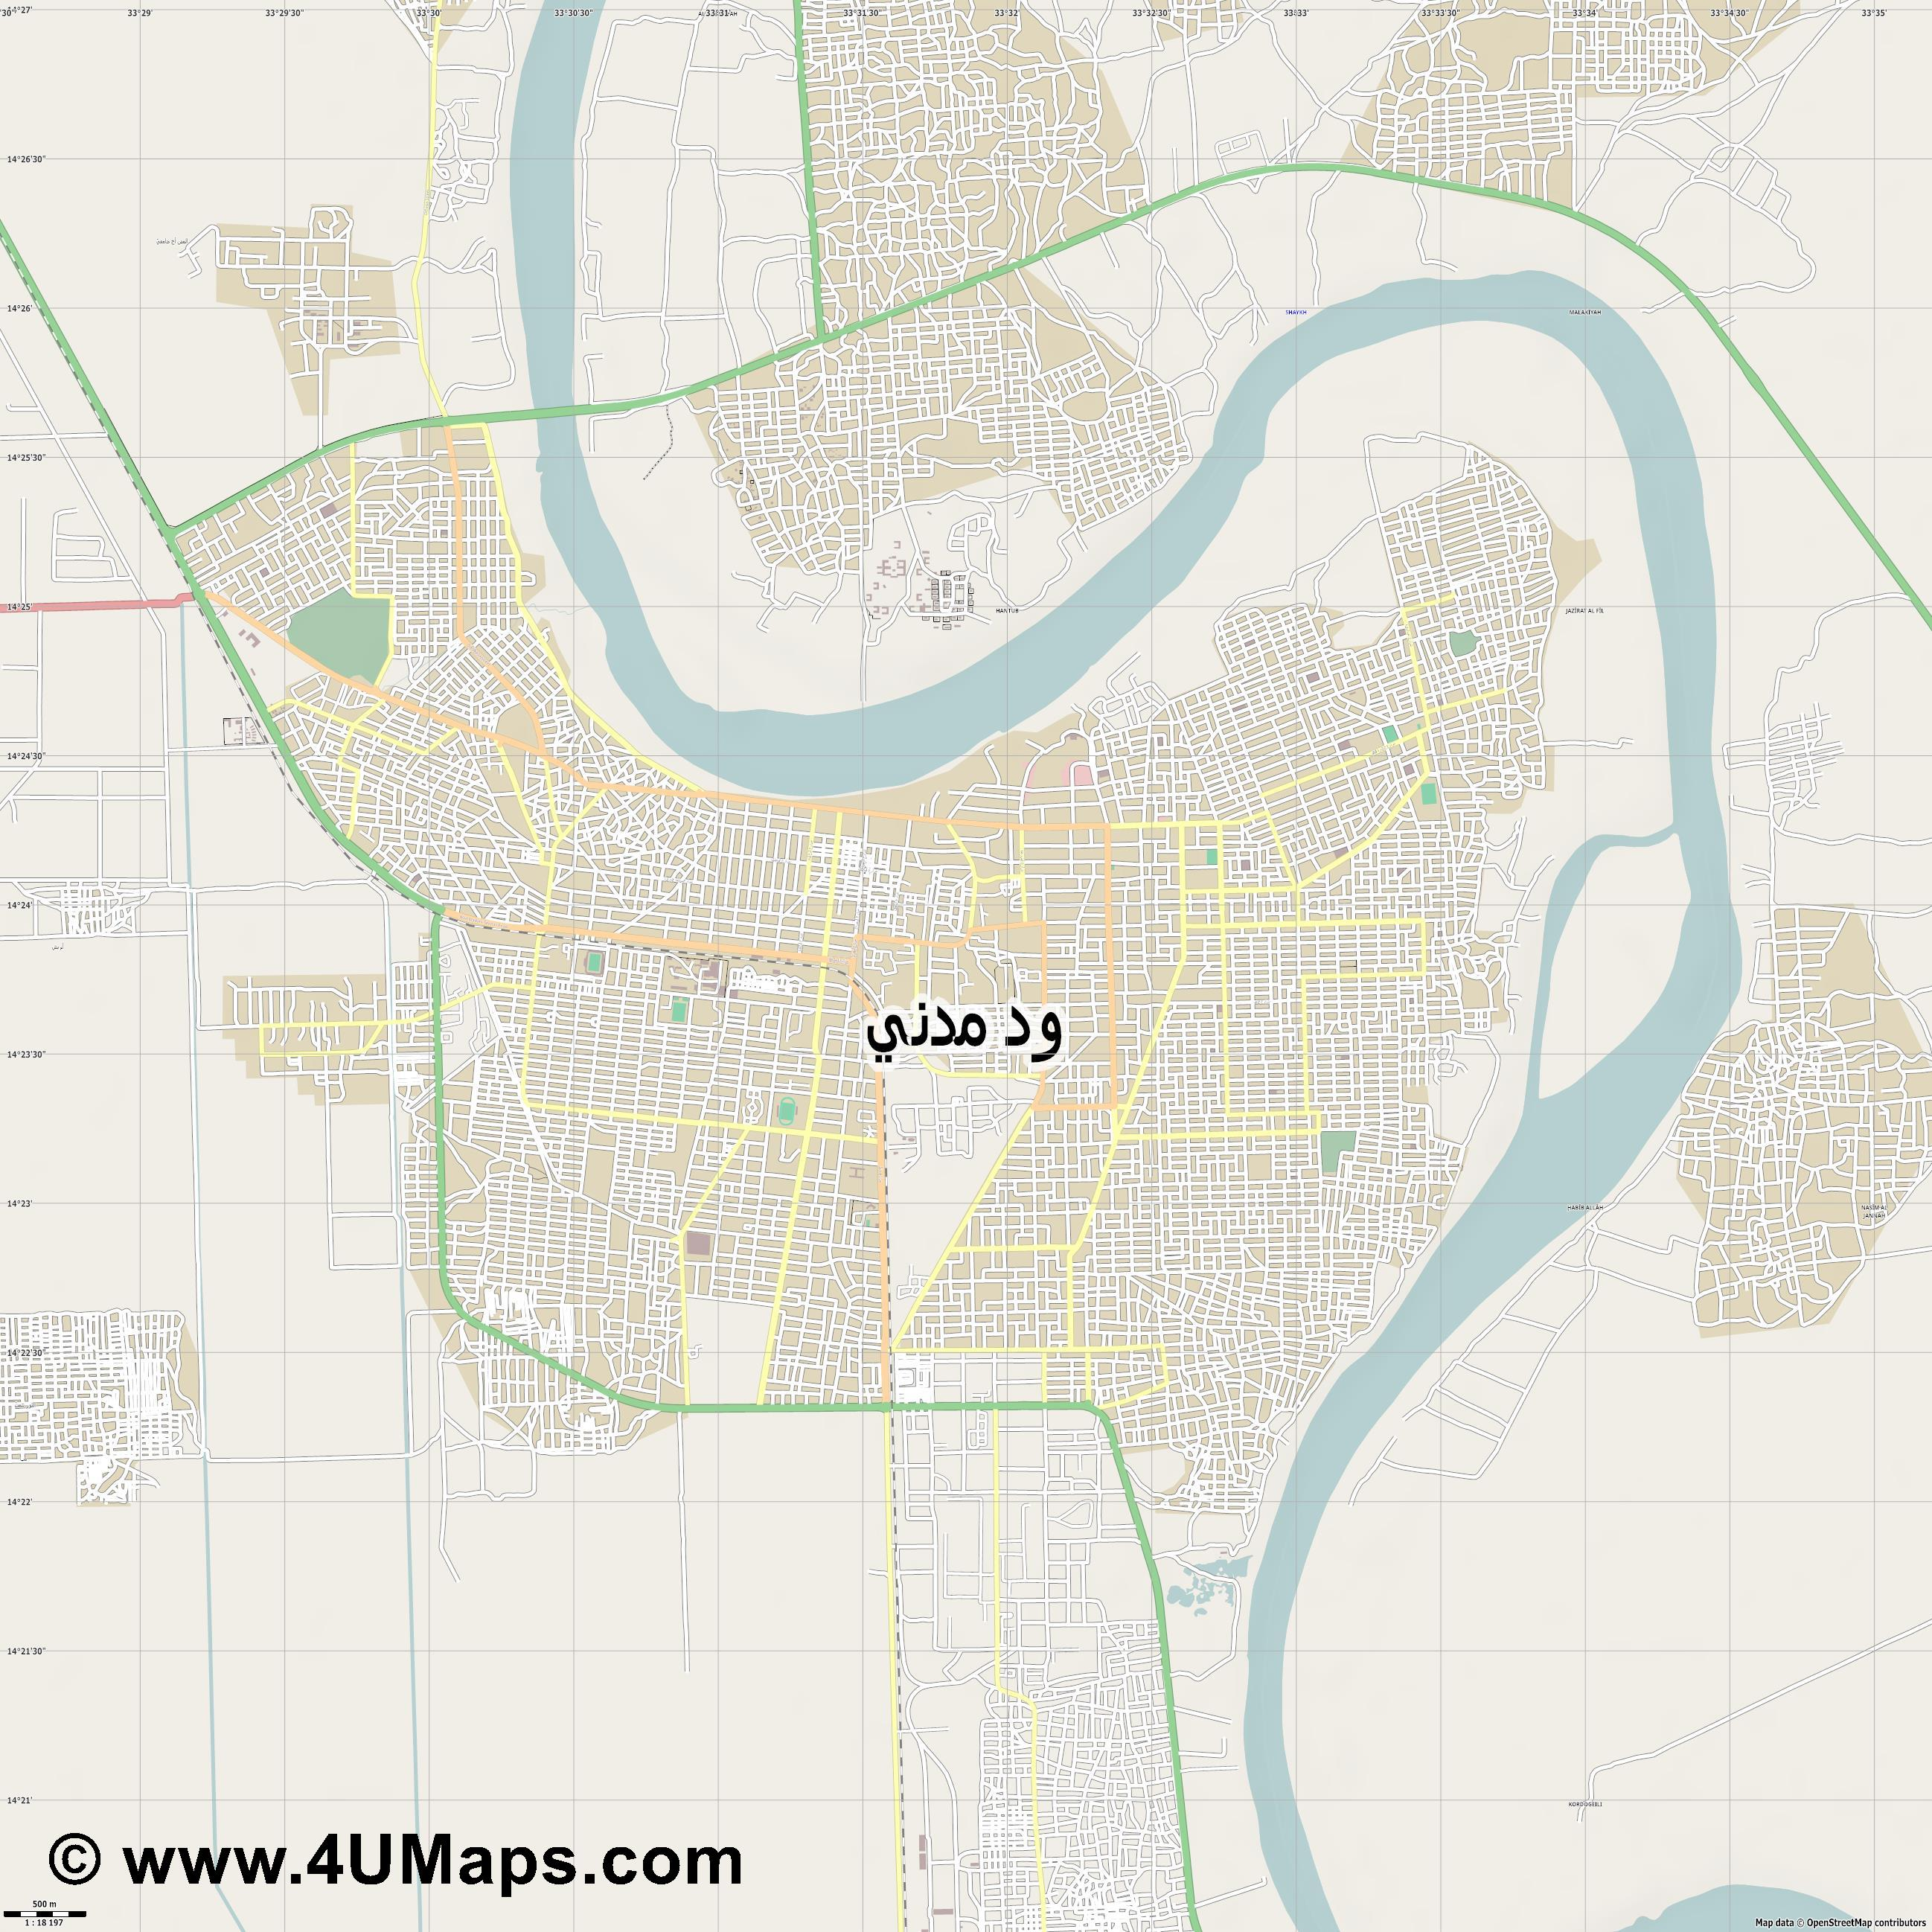 ودمدني  Wad Madani Wad Madanī  jpg ultra high detail preview vector city map